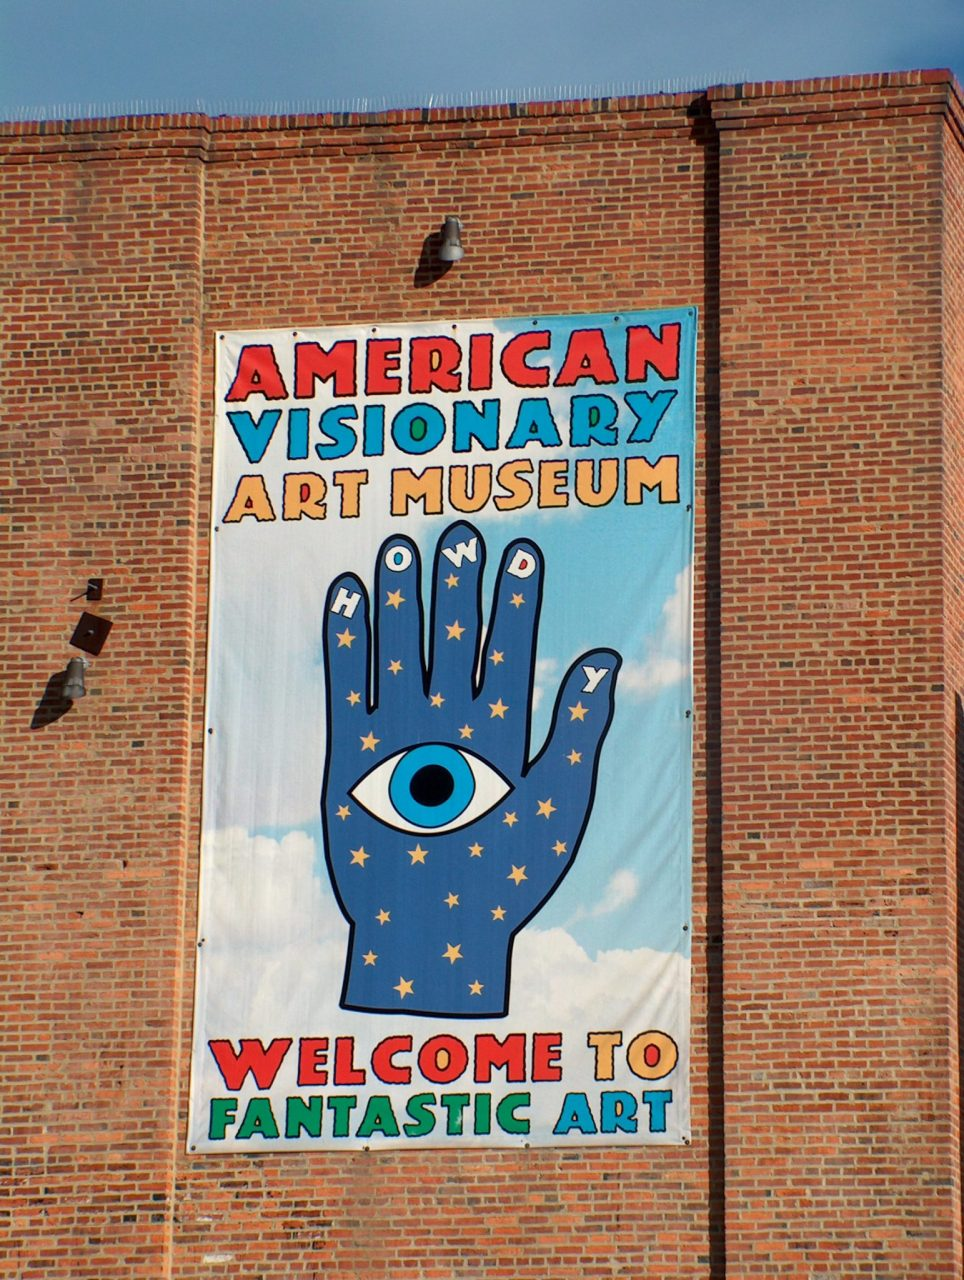 Visit The American Visionary Art Museum in Baltimore